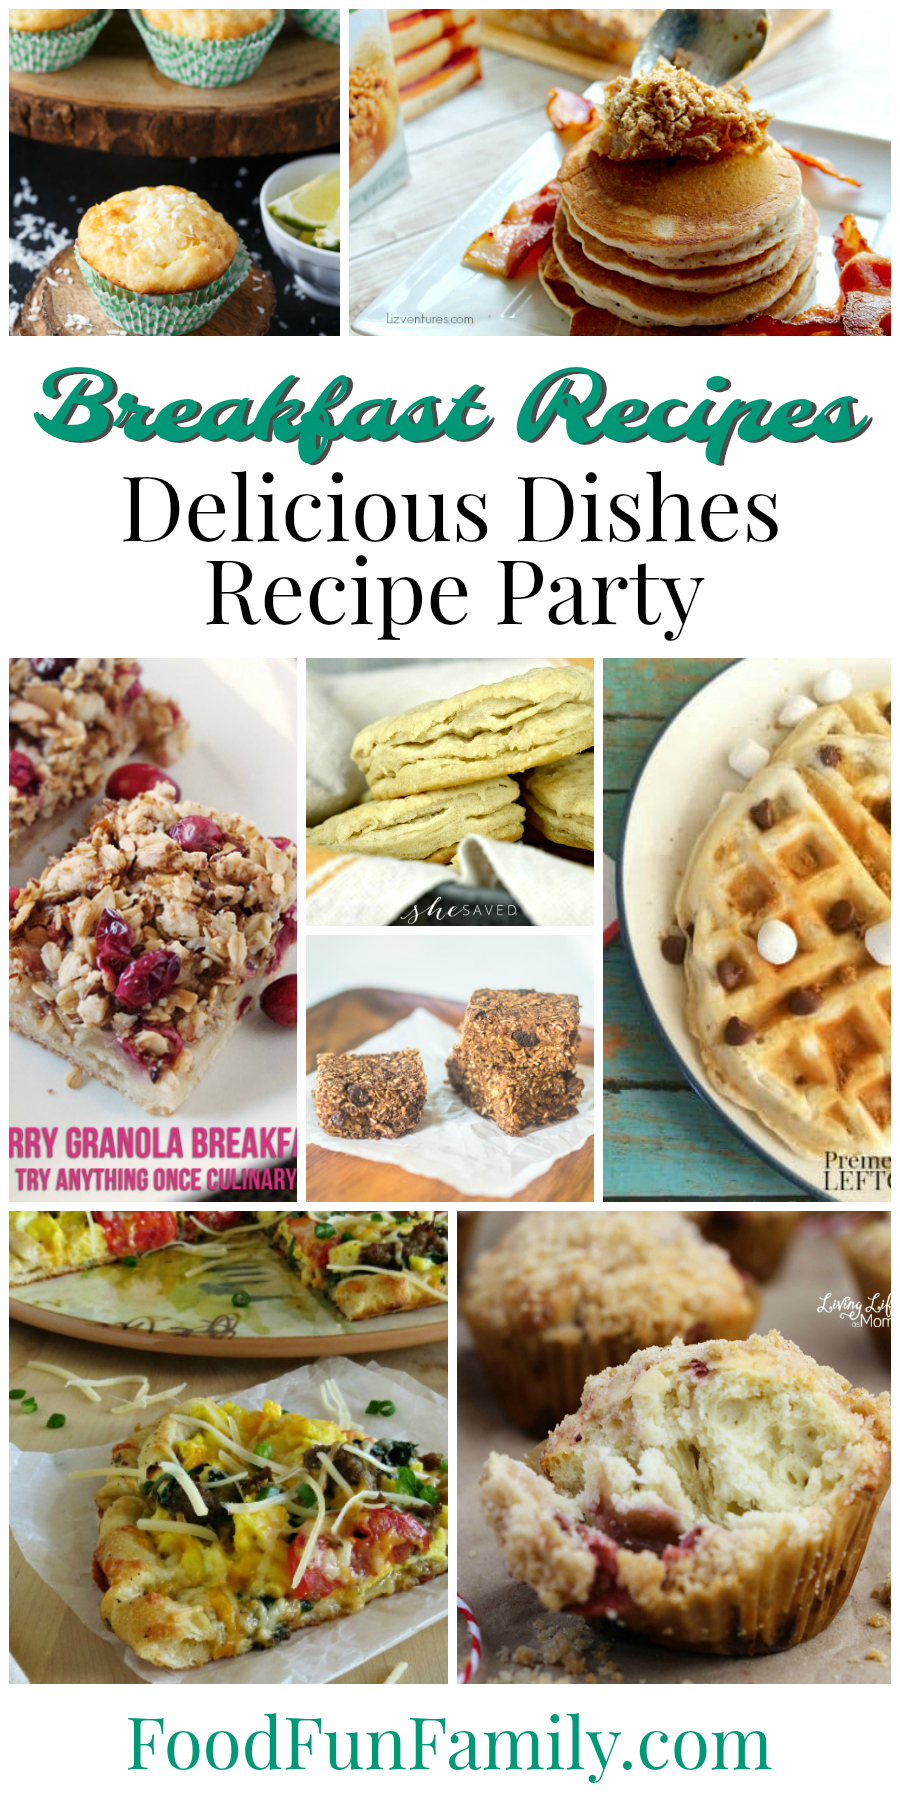 Breakfast Recipes - tasty dishes to make for breakfast and brunch! Delicious Dishes recipe party